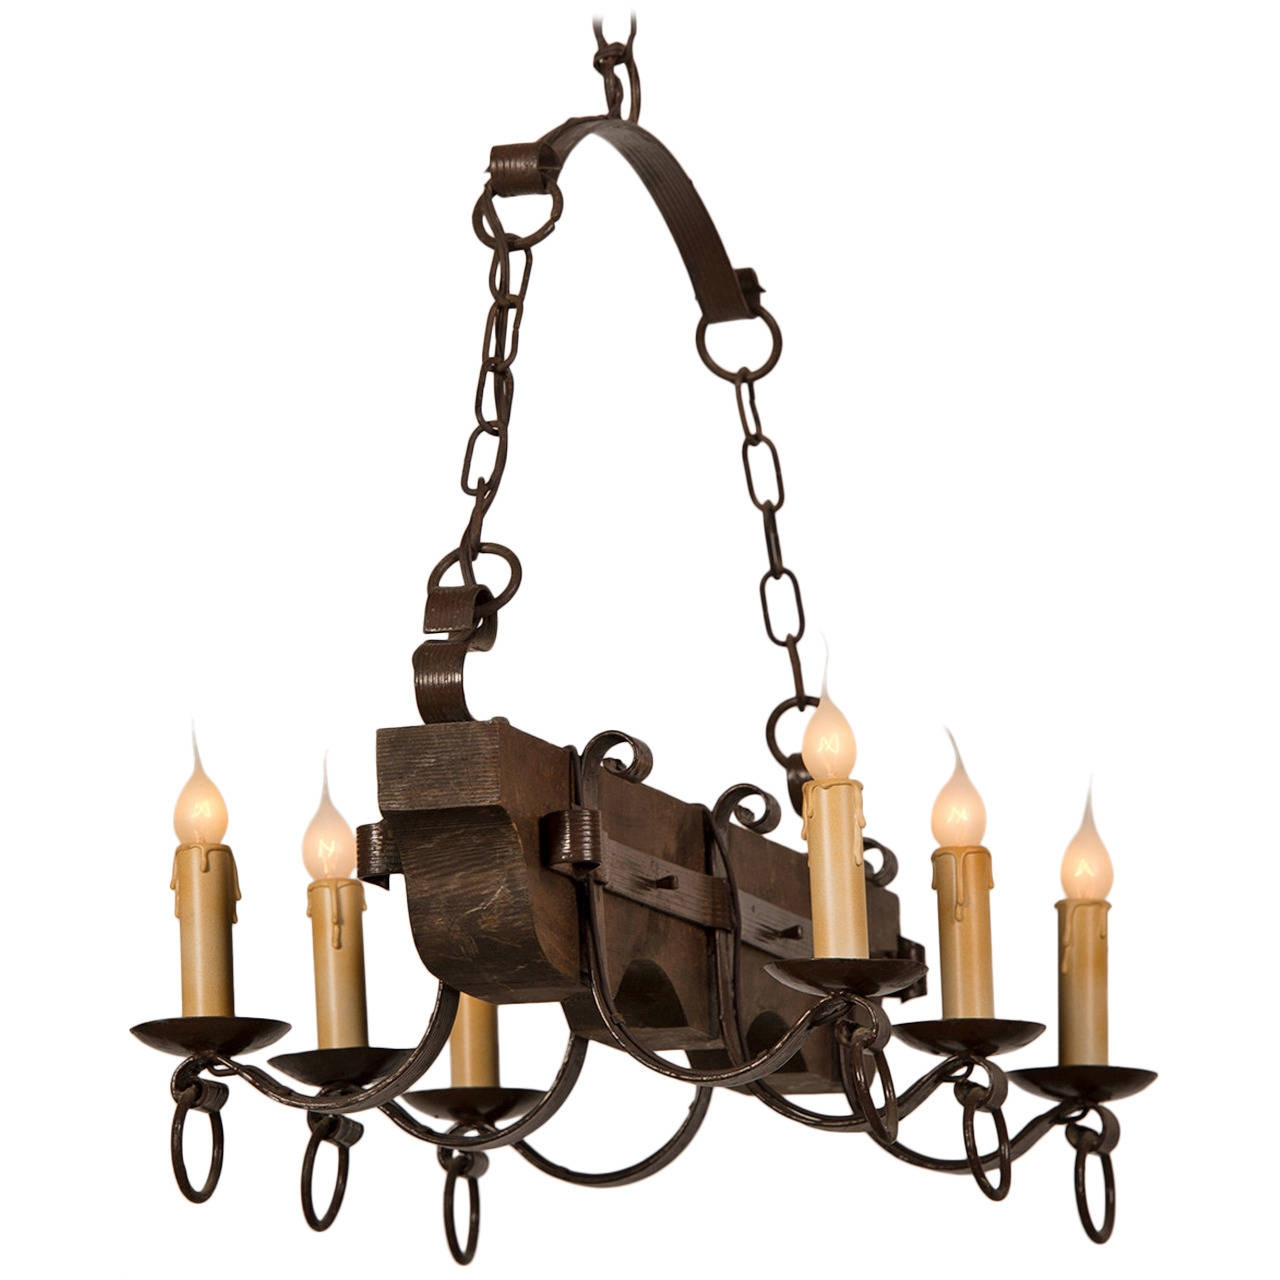 Black Wrought Iron Chandelier Lighting Roselawnlutheran In Black Iron Chandeliers (#6 of 12)